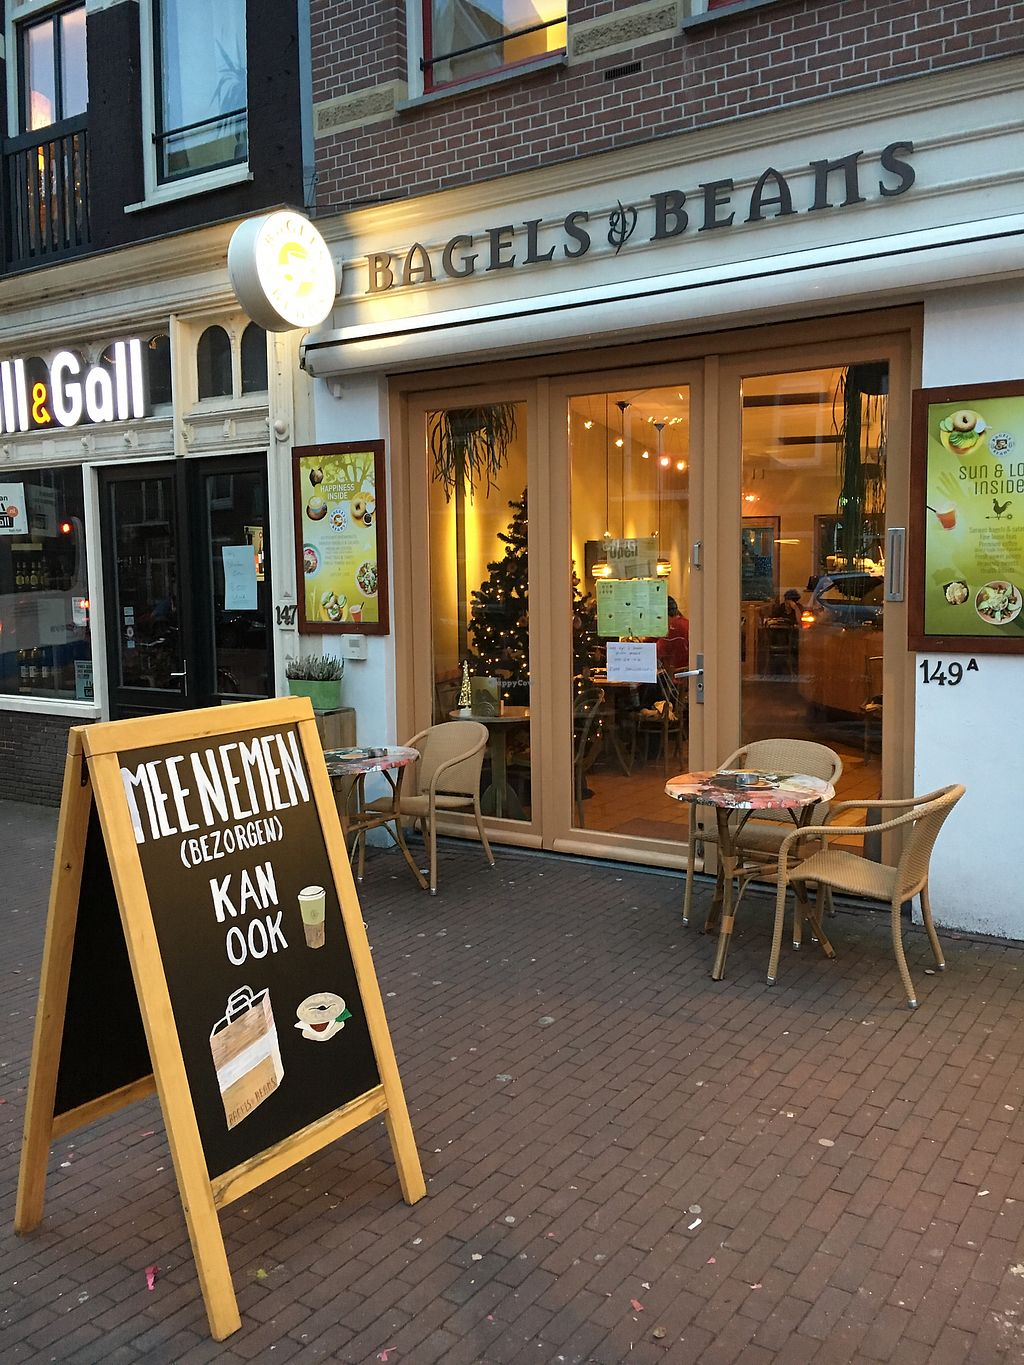 "Photo of Bagels & Beans - Spaarndammerstraat  by <a href=""/members/profile/hack_man"">hack_man</a> <br/>Exterior  <br/> January 1, 2018  - <a href='/contact/abuse/image/49257/341666'>Report</a>"